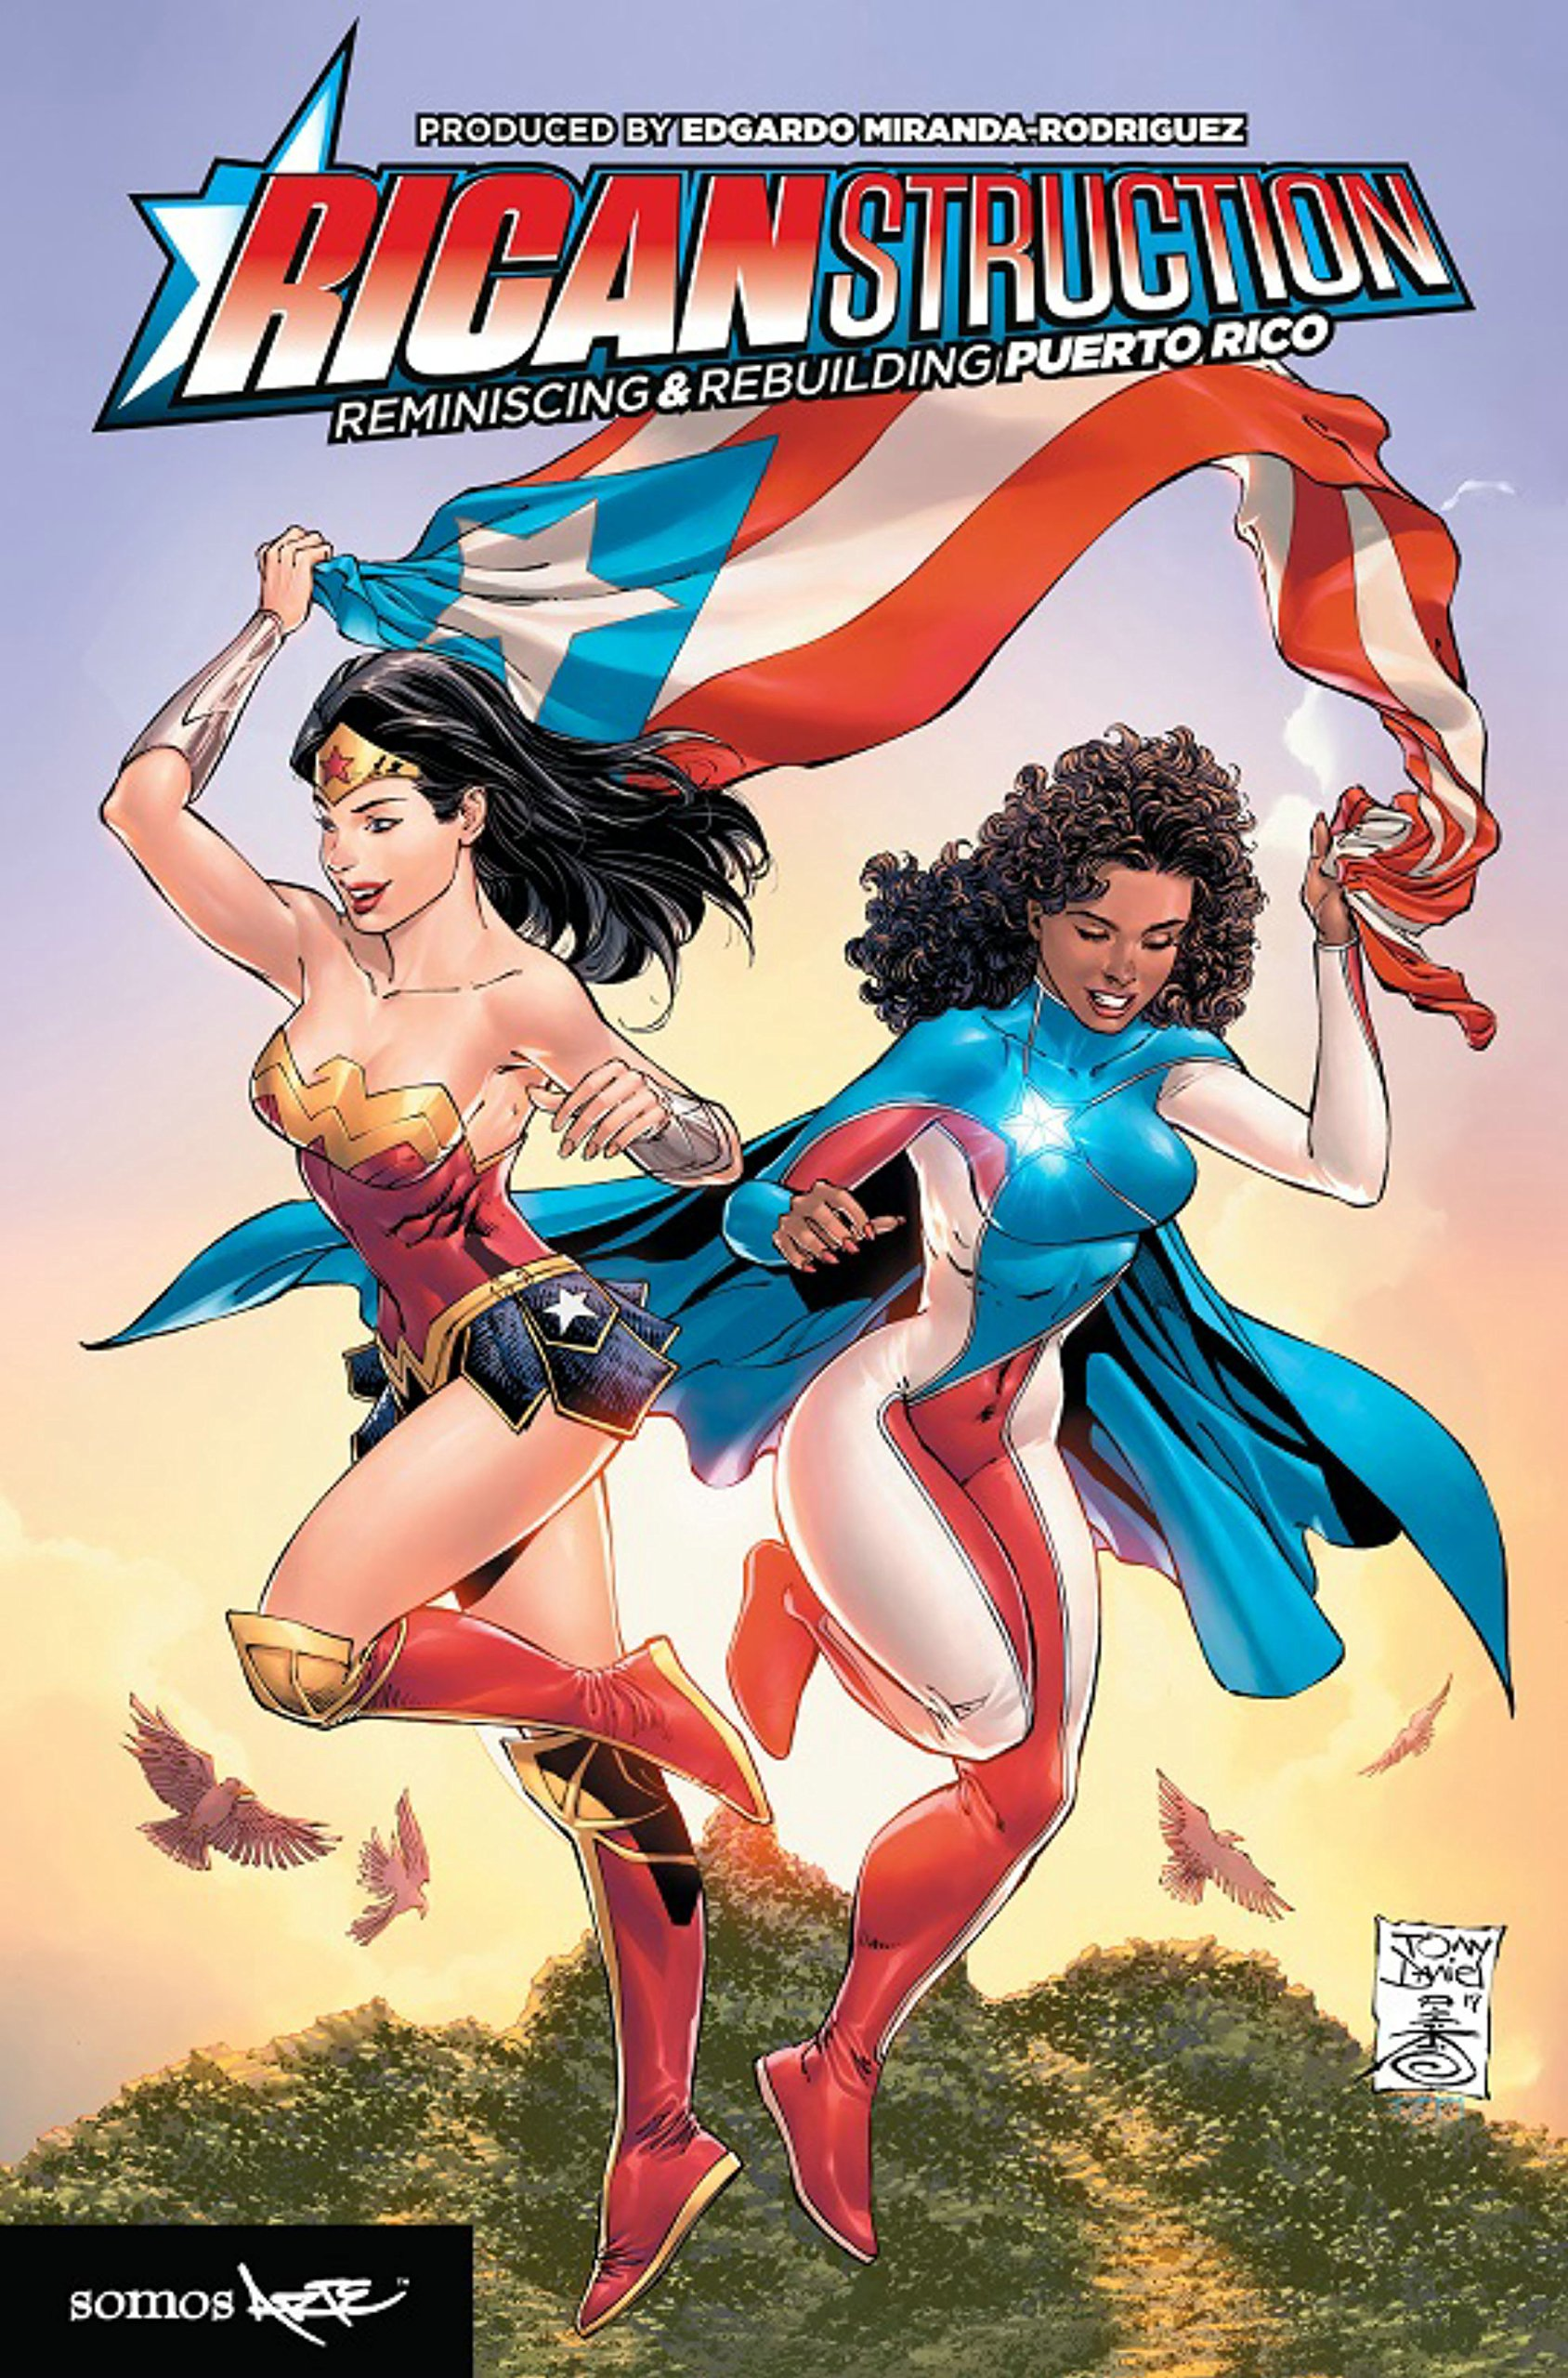 the cover for Ricanstruction